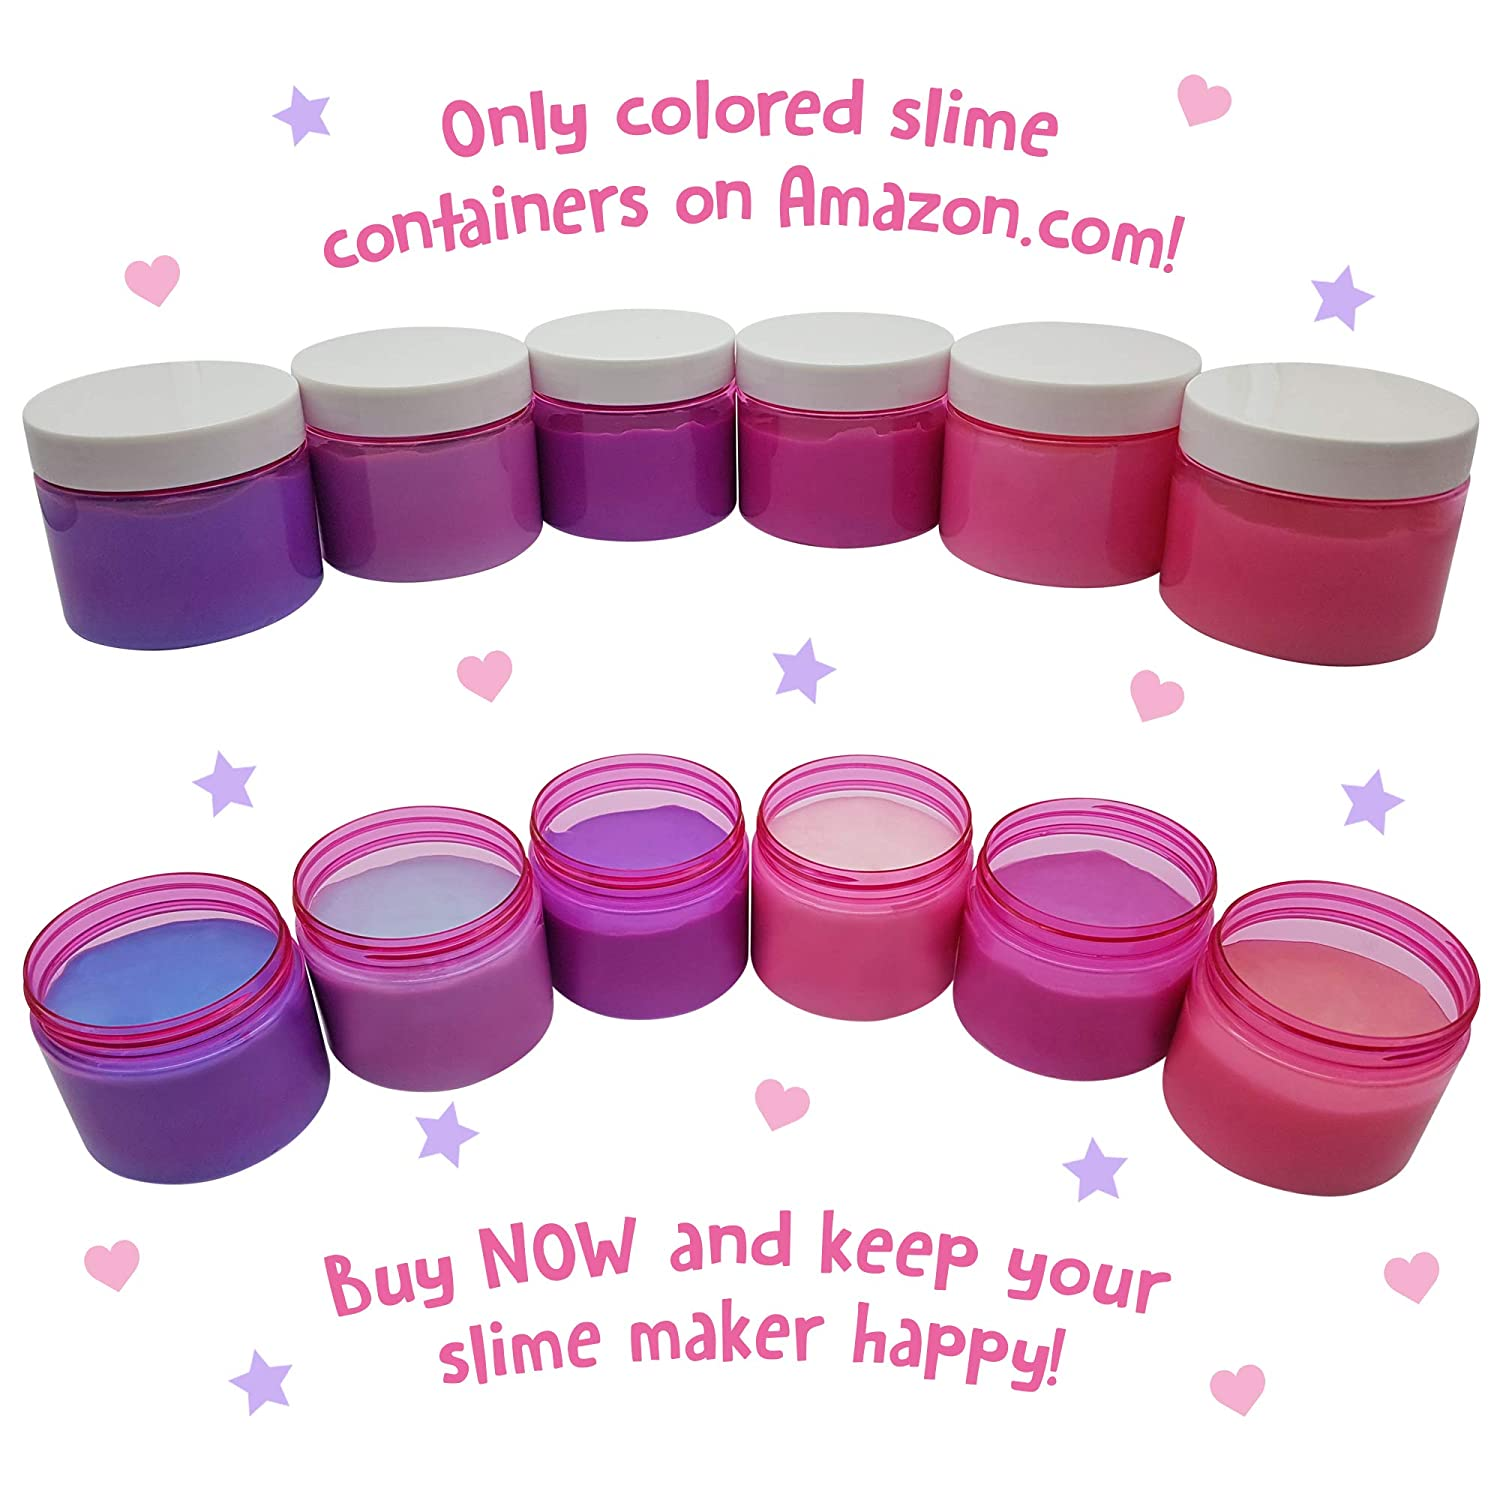 d0161ea9fcd9 Original Stationery Slime Containers with Lids 6 ounce [PERFECT SLIME  CONTAINERS, NO BPA's SAFE FOR KIDS] Small Plastic Storage Jars Screw Tops,  [FOR ...